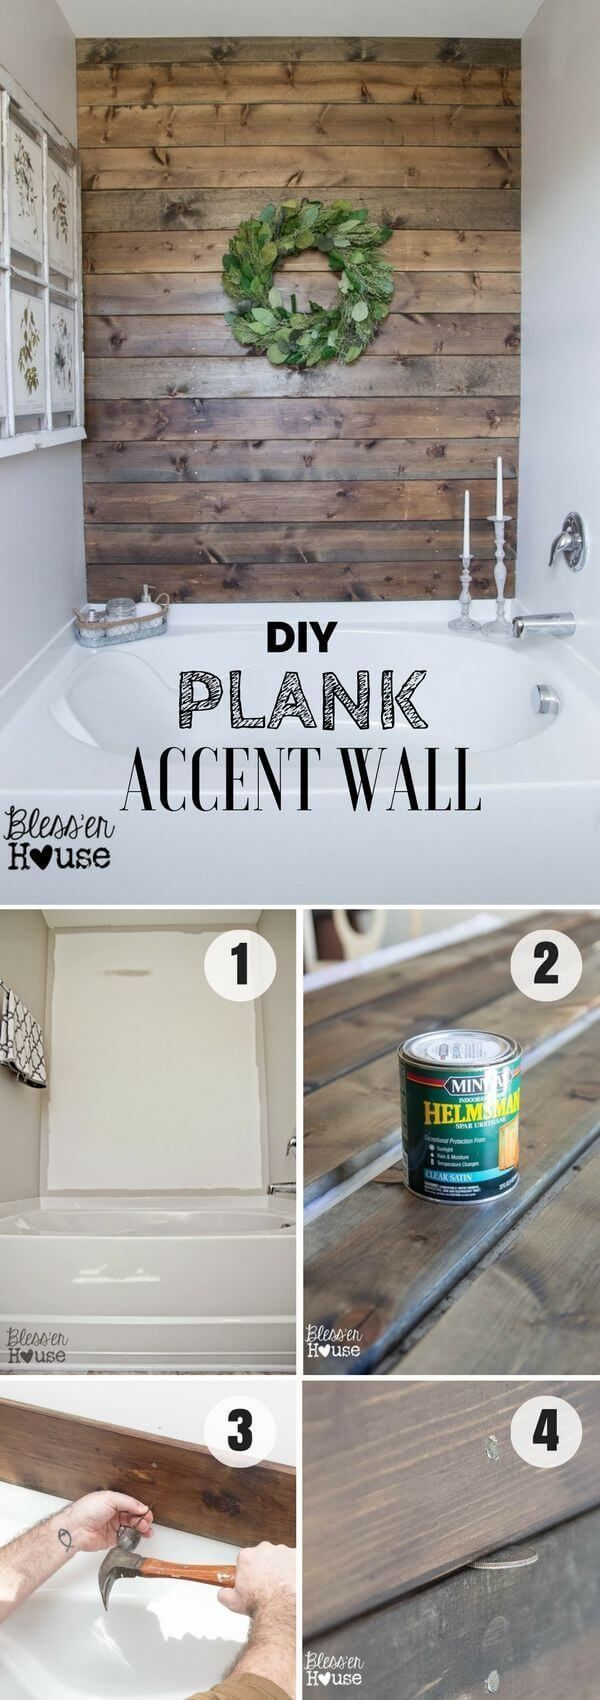 DIY Rustic Wood Accent Wall Turn the old wainscot paneling ...